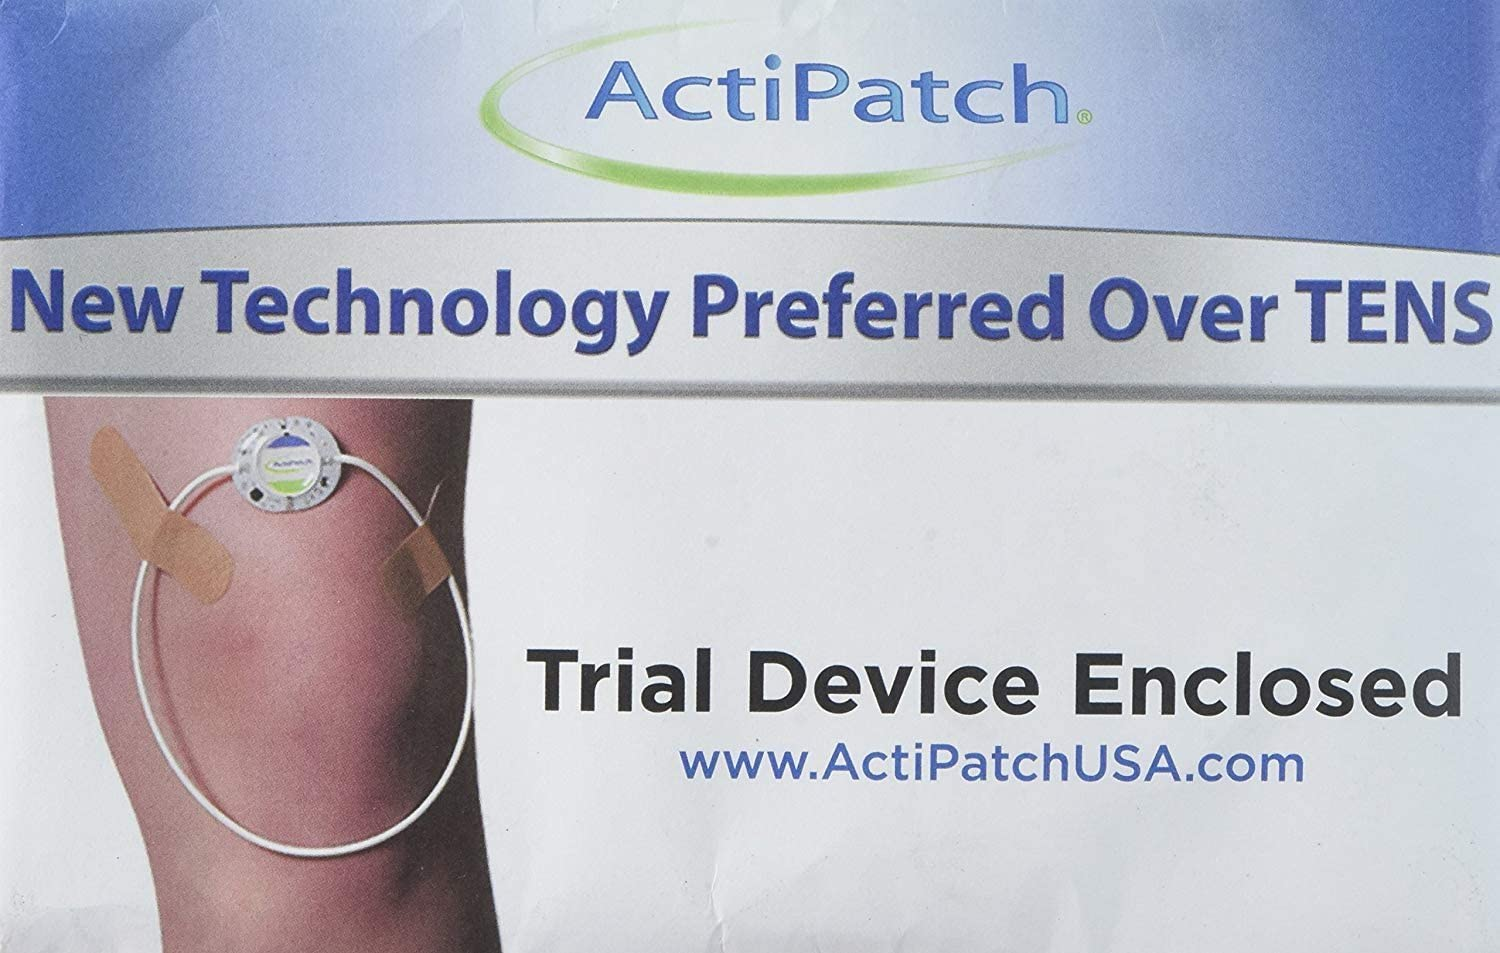 ActiPatch Advanced 24-Hour Pain Relief Device   Drug-Free, Sensation-Free   7-Day Trial (Cannot Be Turned Off)